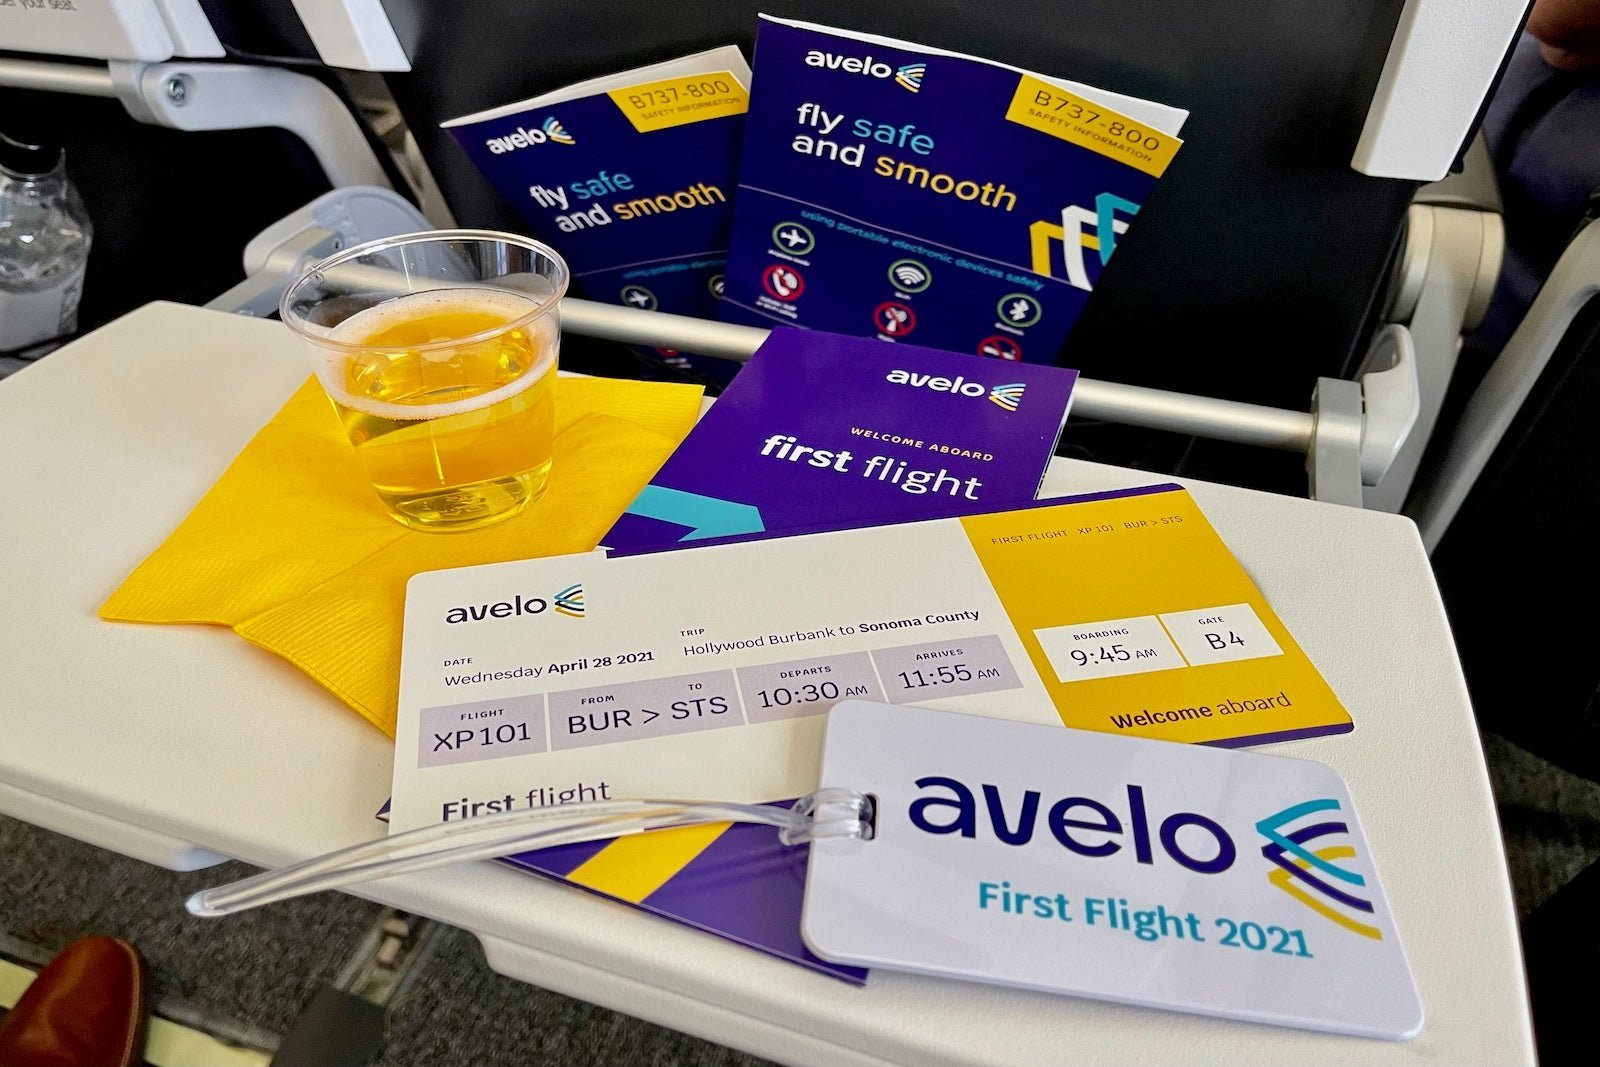 2 new airlines launch service in America